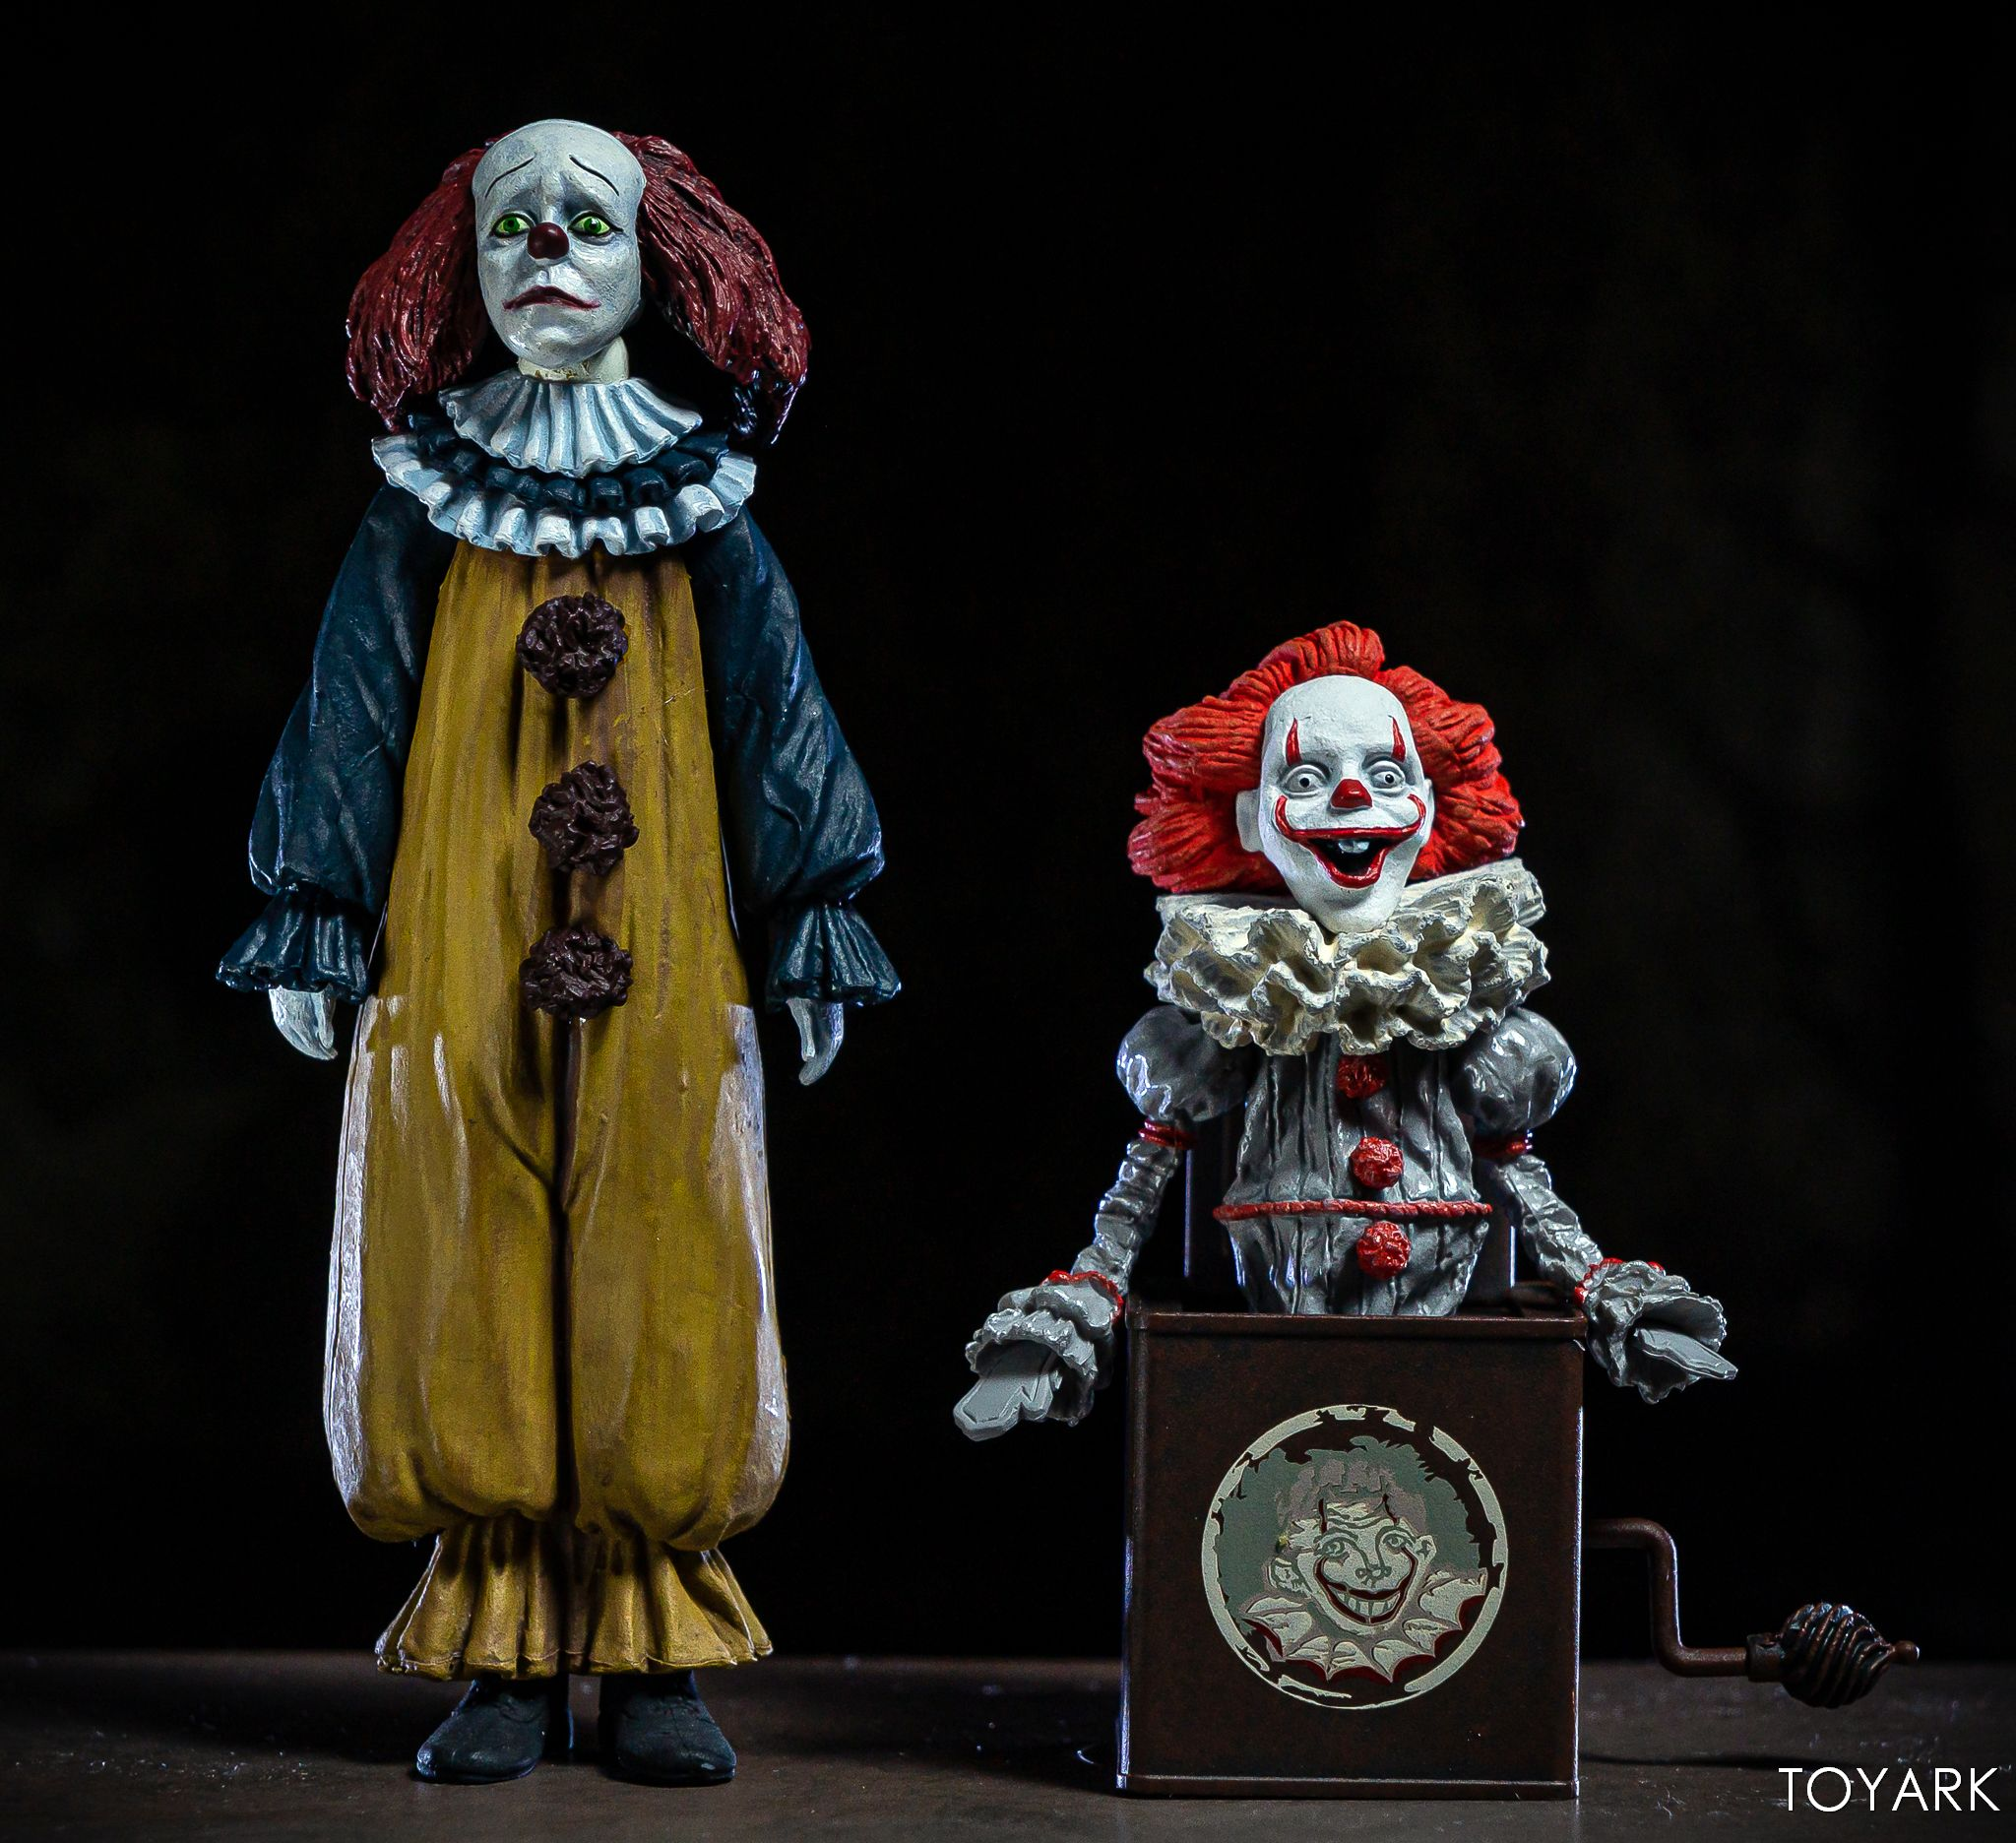 https://news.toyark.com/wp-content/uploads/sites/4/2019/05/NECA-Pennywise-Accessory-Set-041.jpg